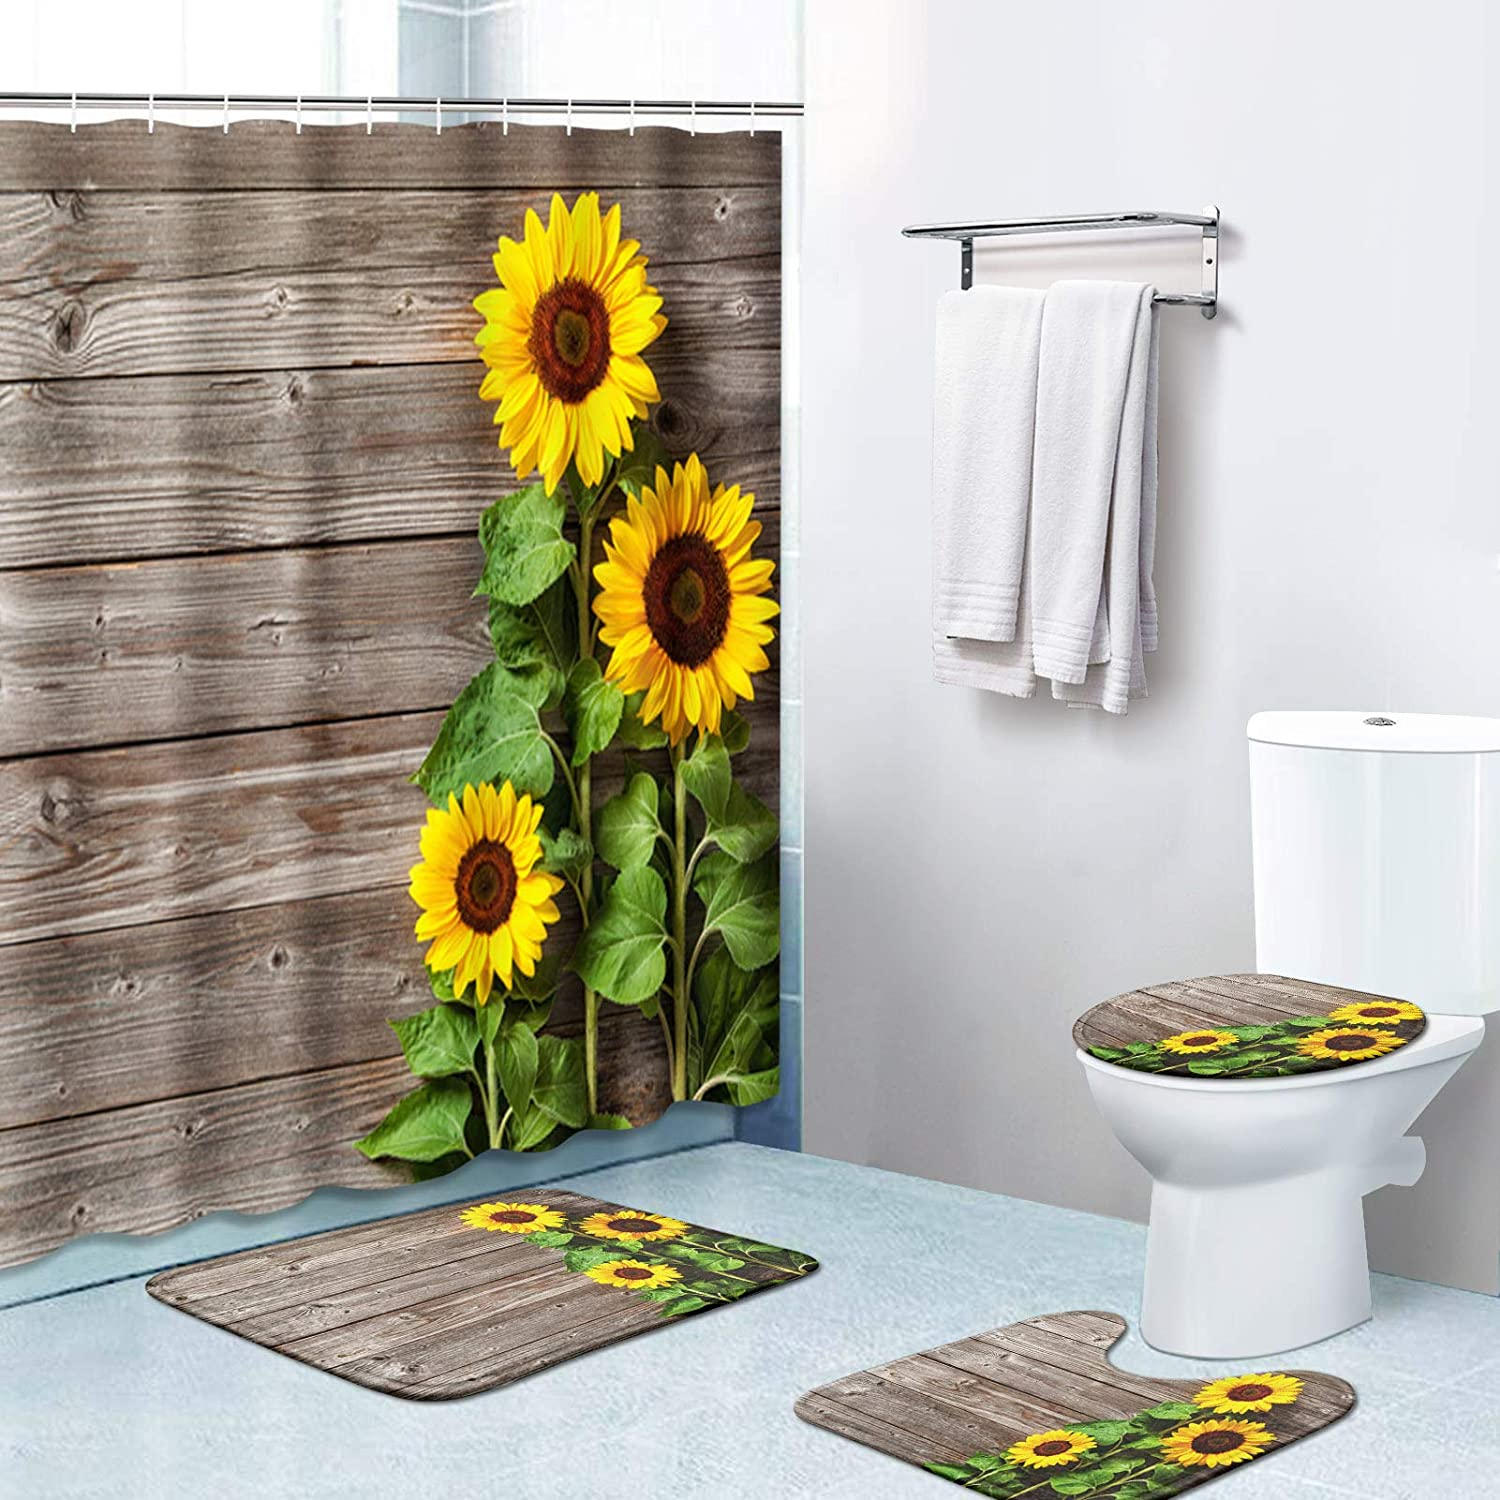 Britimes 4 Free shipping New Piece Shower Curtain Hooks Sets Sunflowers Sales of SALE items from new works 12 with